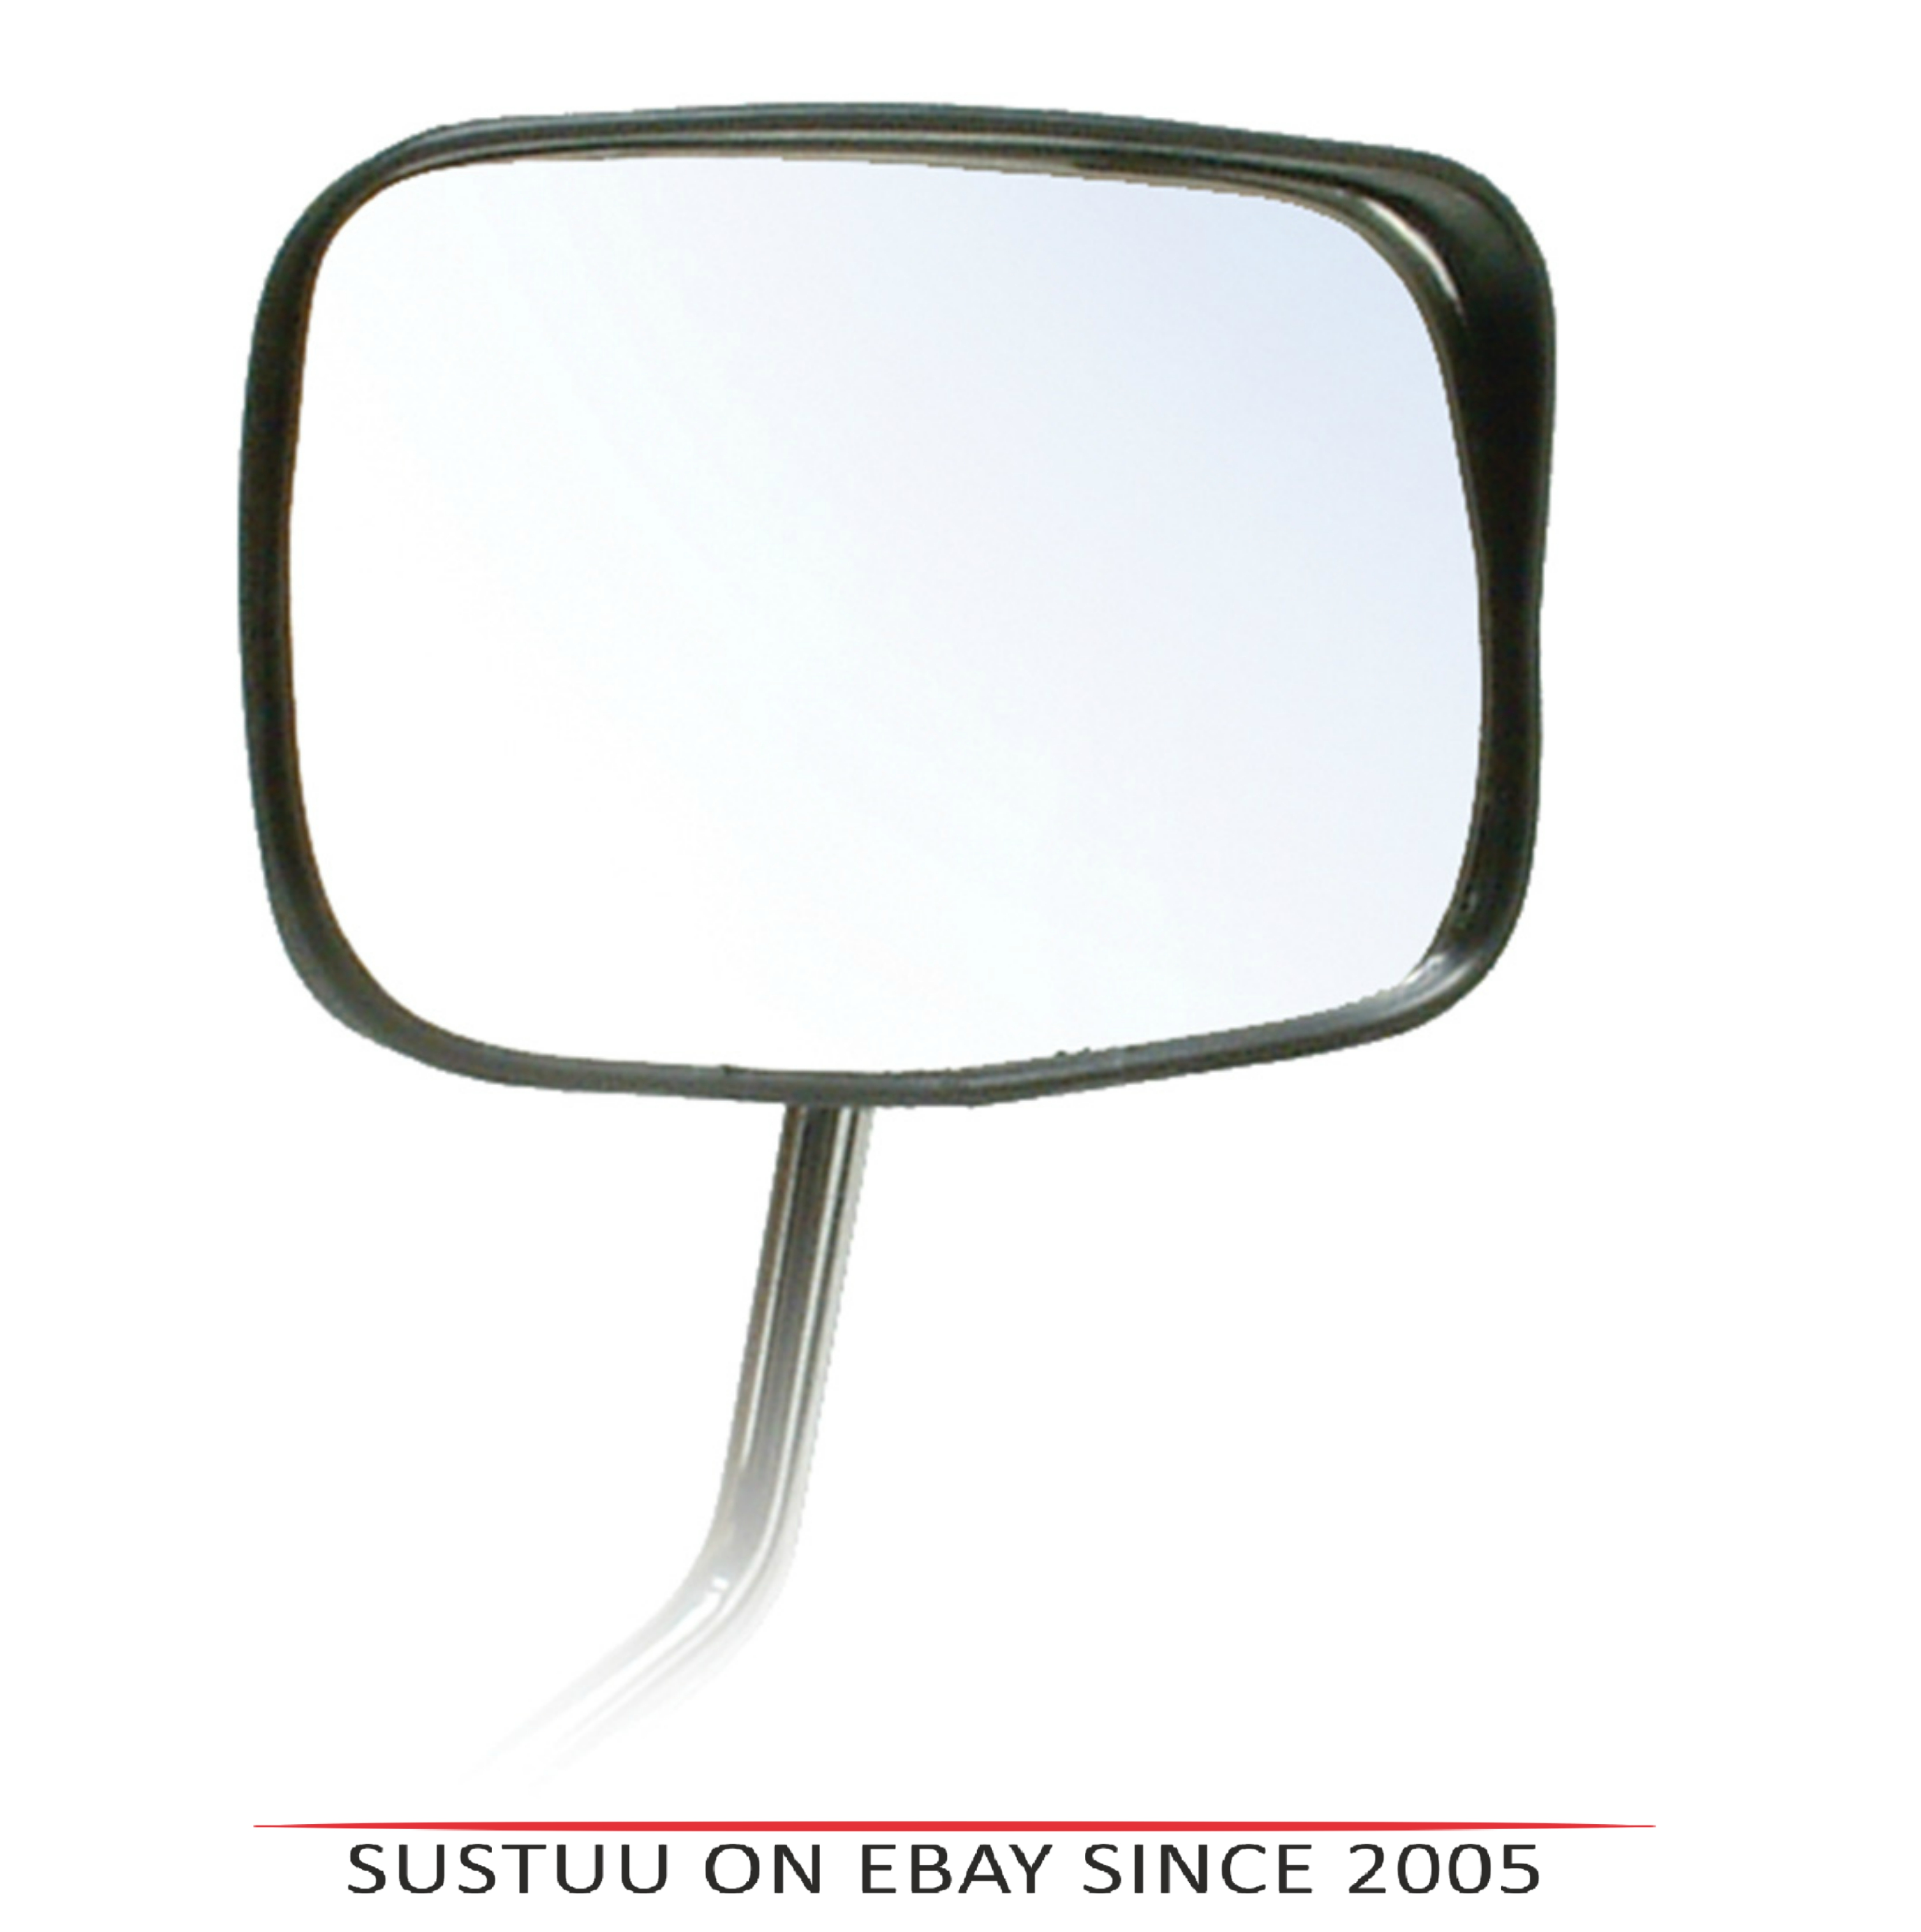 Oxford Oblong Fully Adjustable Mirror-Black Rainshielded For Motorbike & Cycle